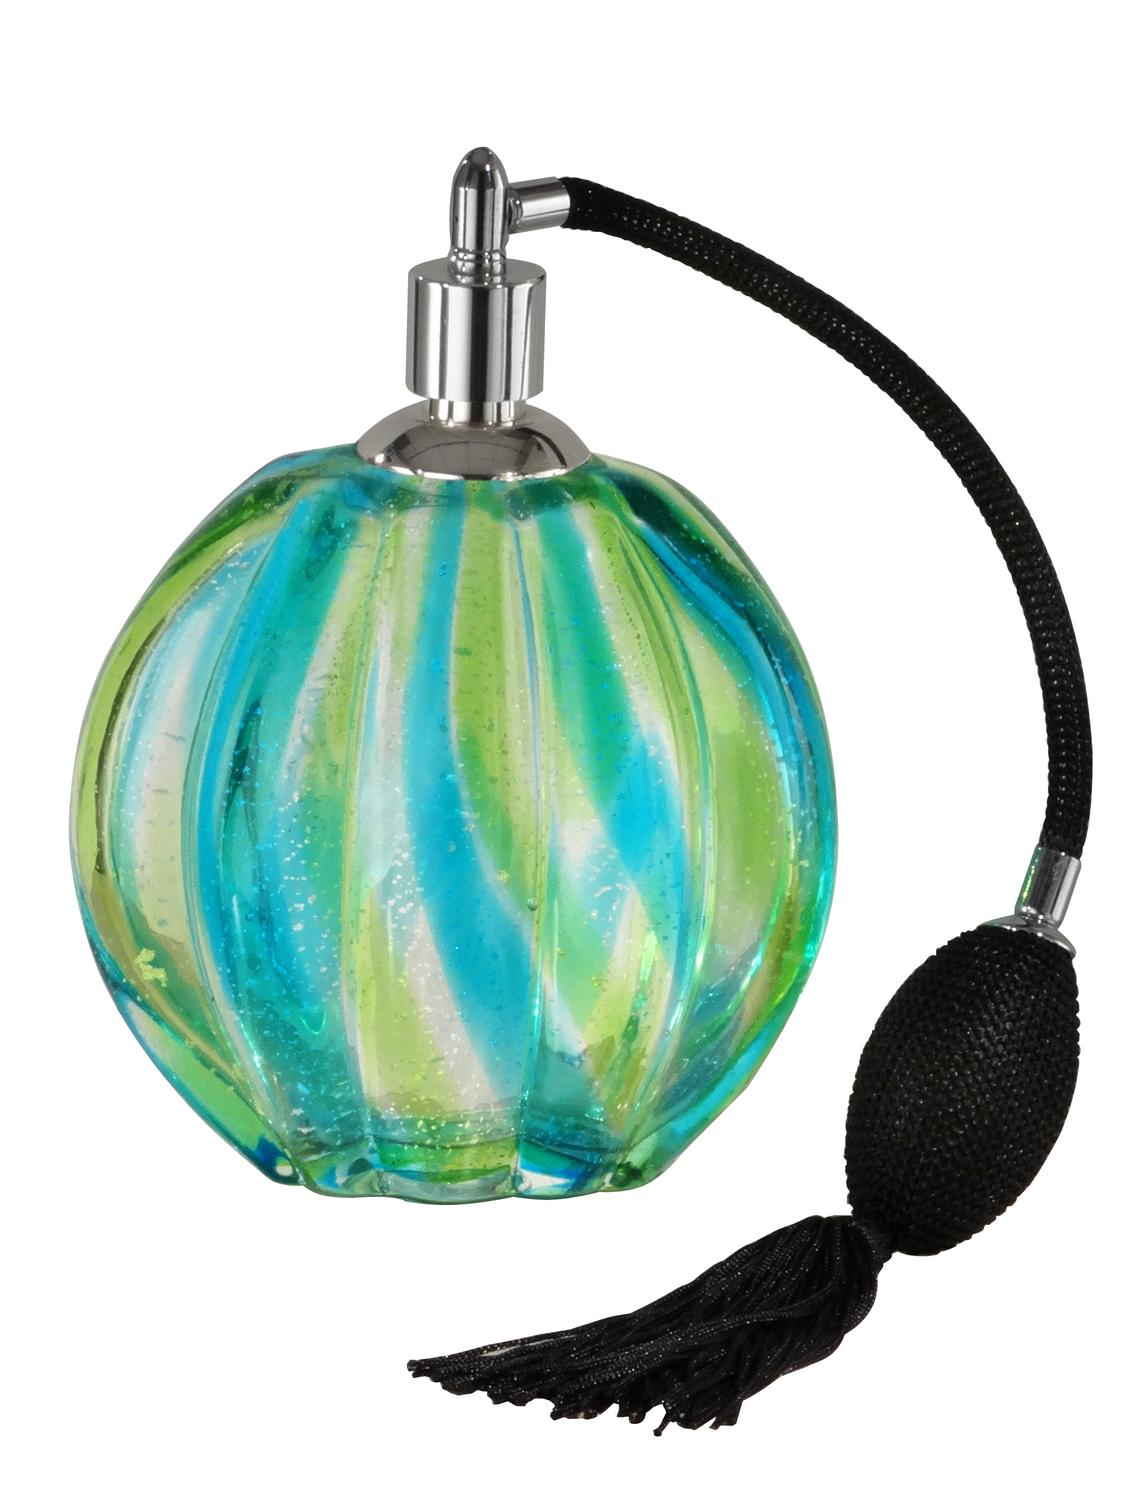 "6.25"" Blue and Green Decorative Art Glass Perfume Bottle by Diva At Home"